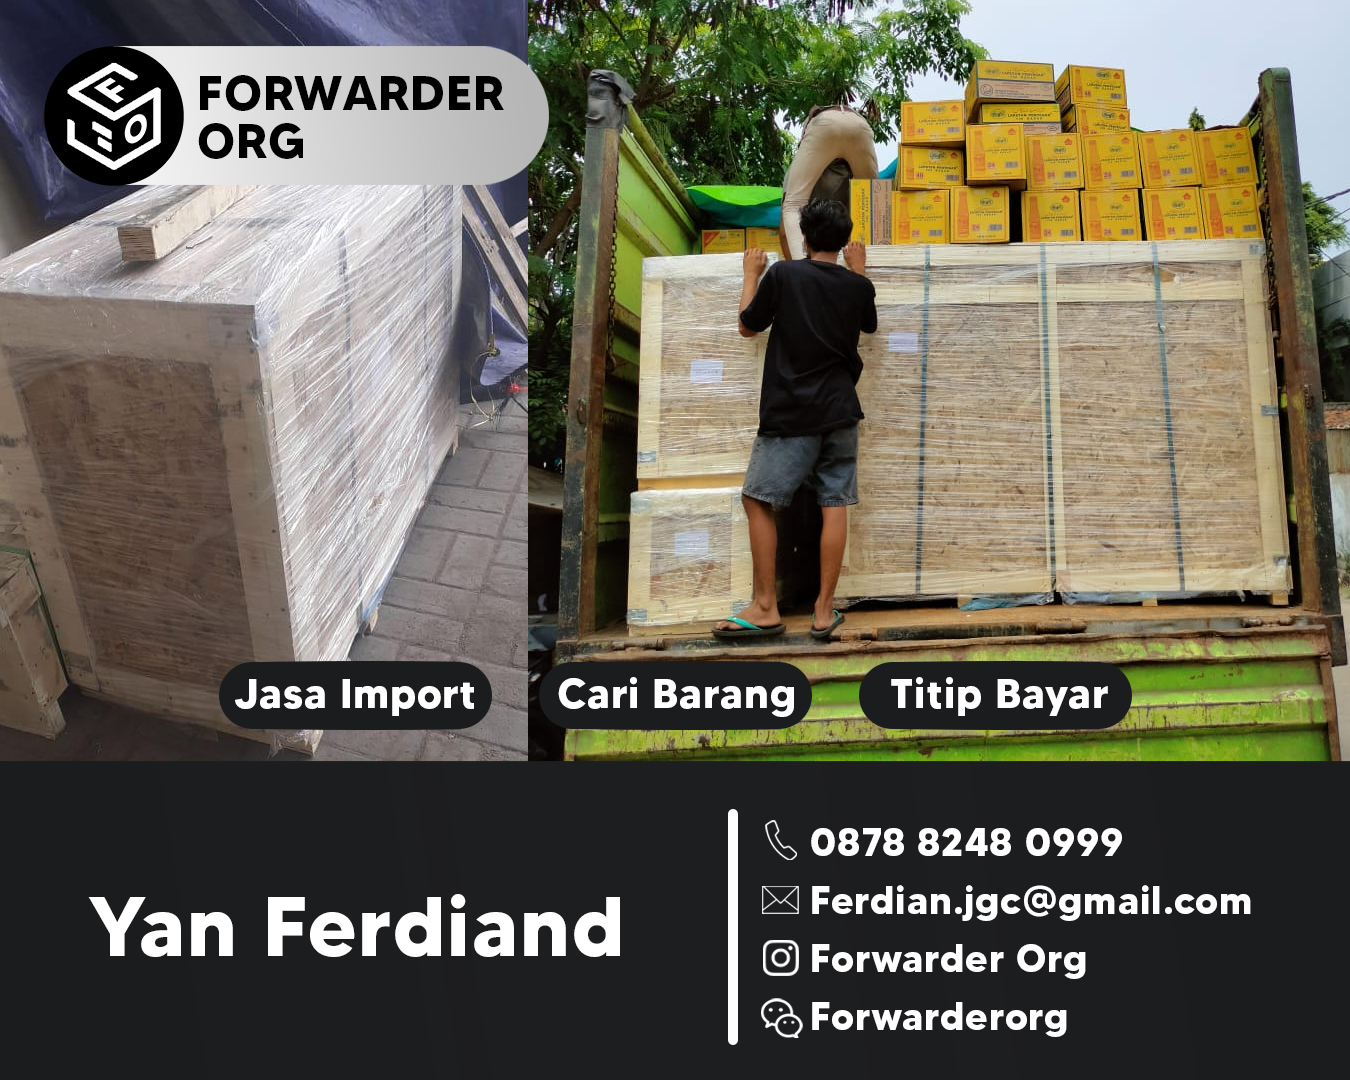 Jasa Import Breaker dan Sparepartnya dari China | FORWARDER ORG